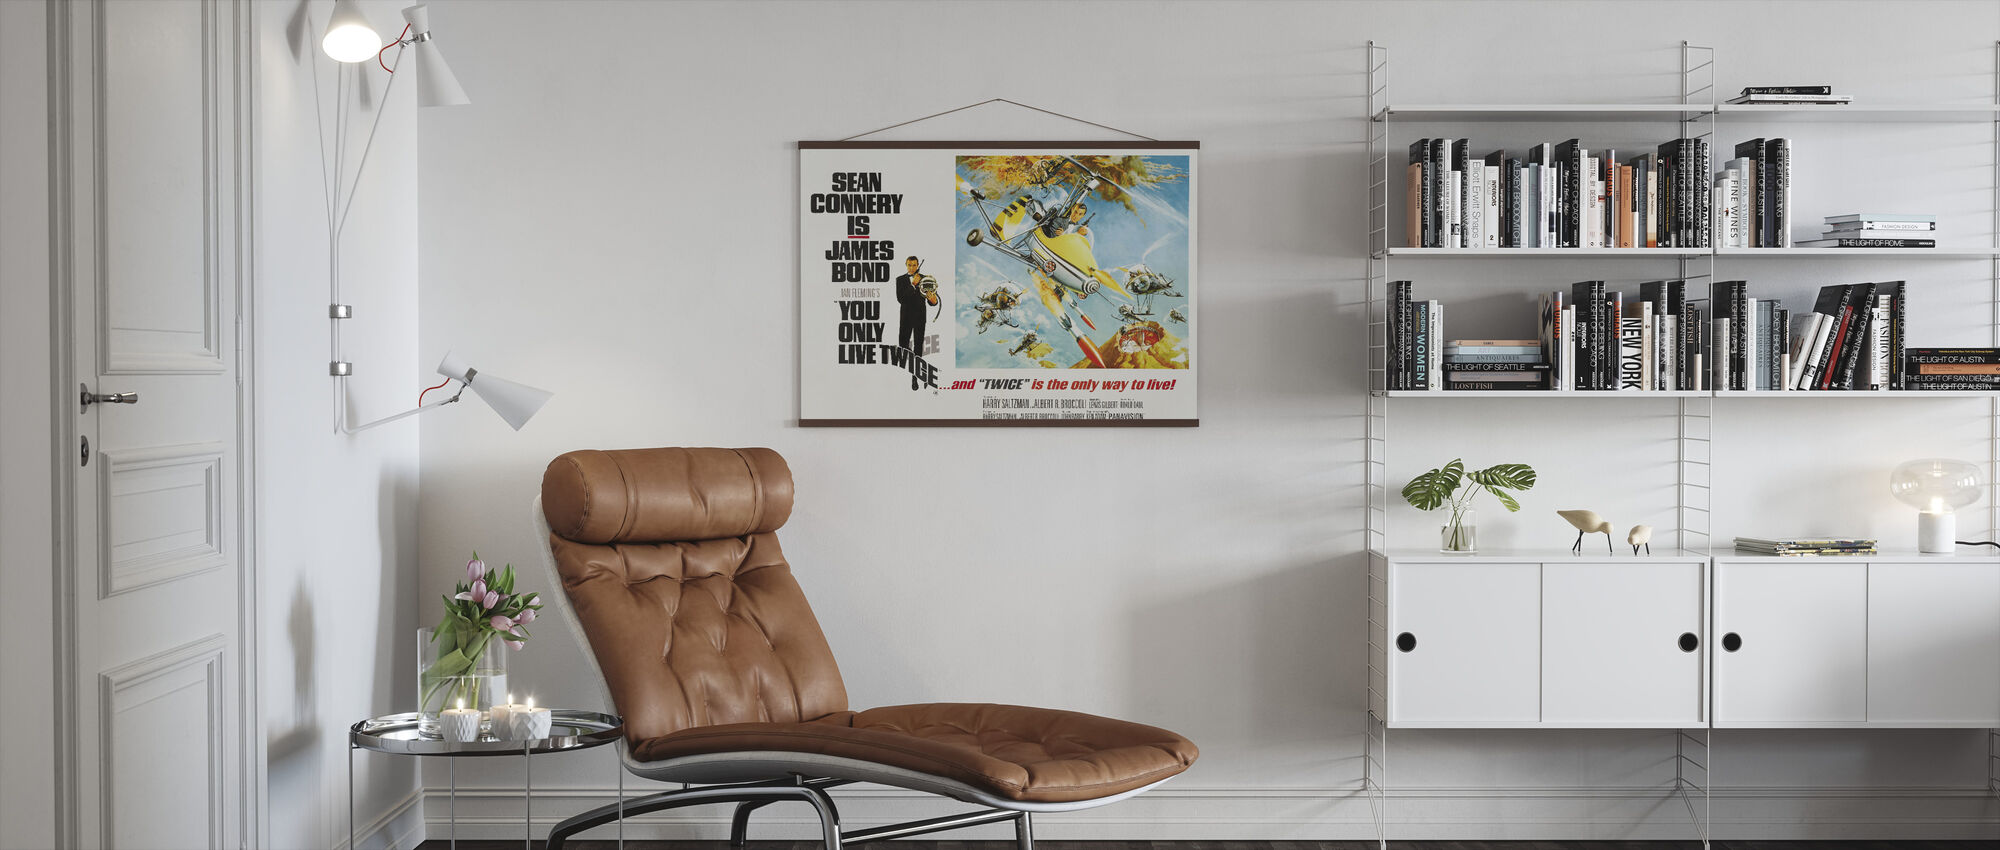 James Bond You Only Live Twice - Poster - Living Room